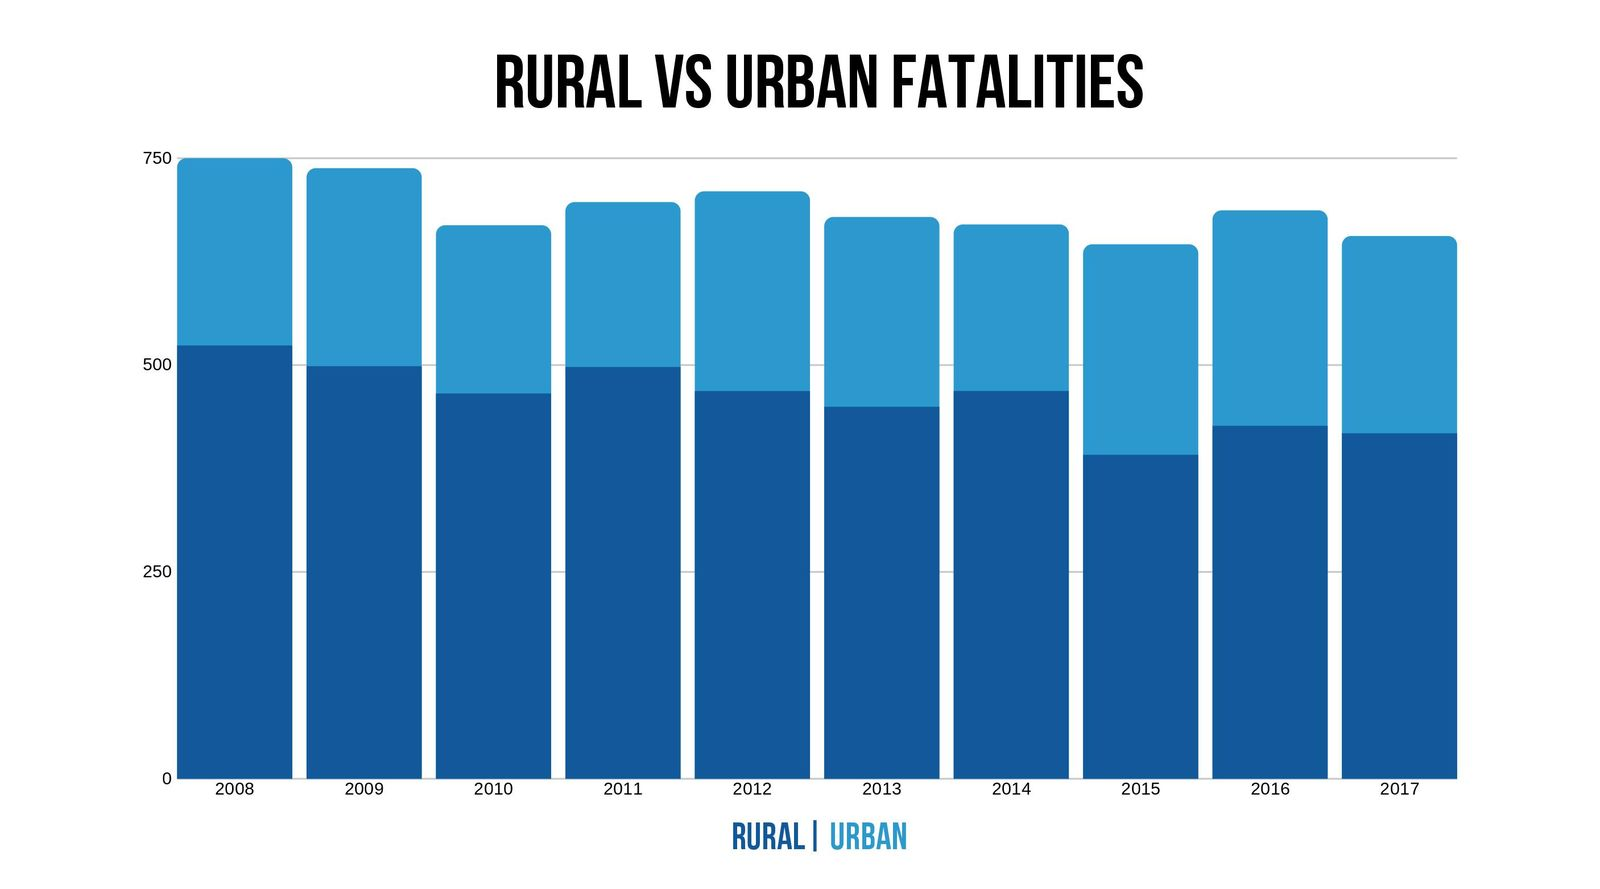 Oklahoma rural vs urban fatalities